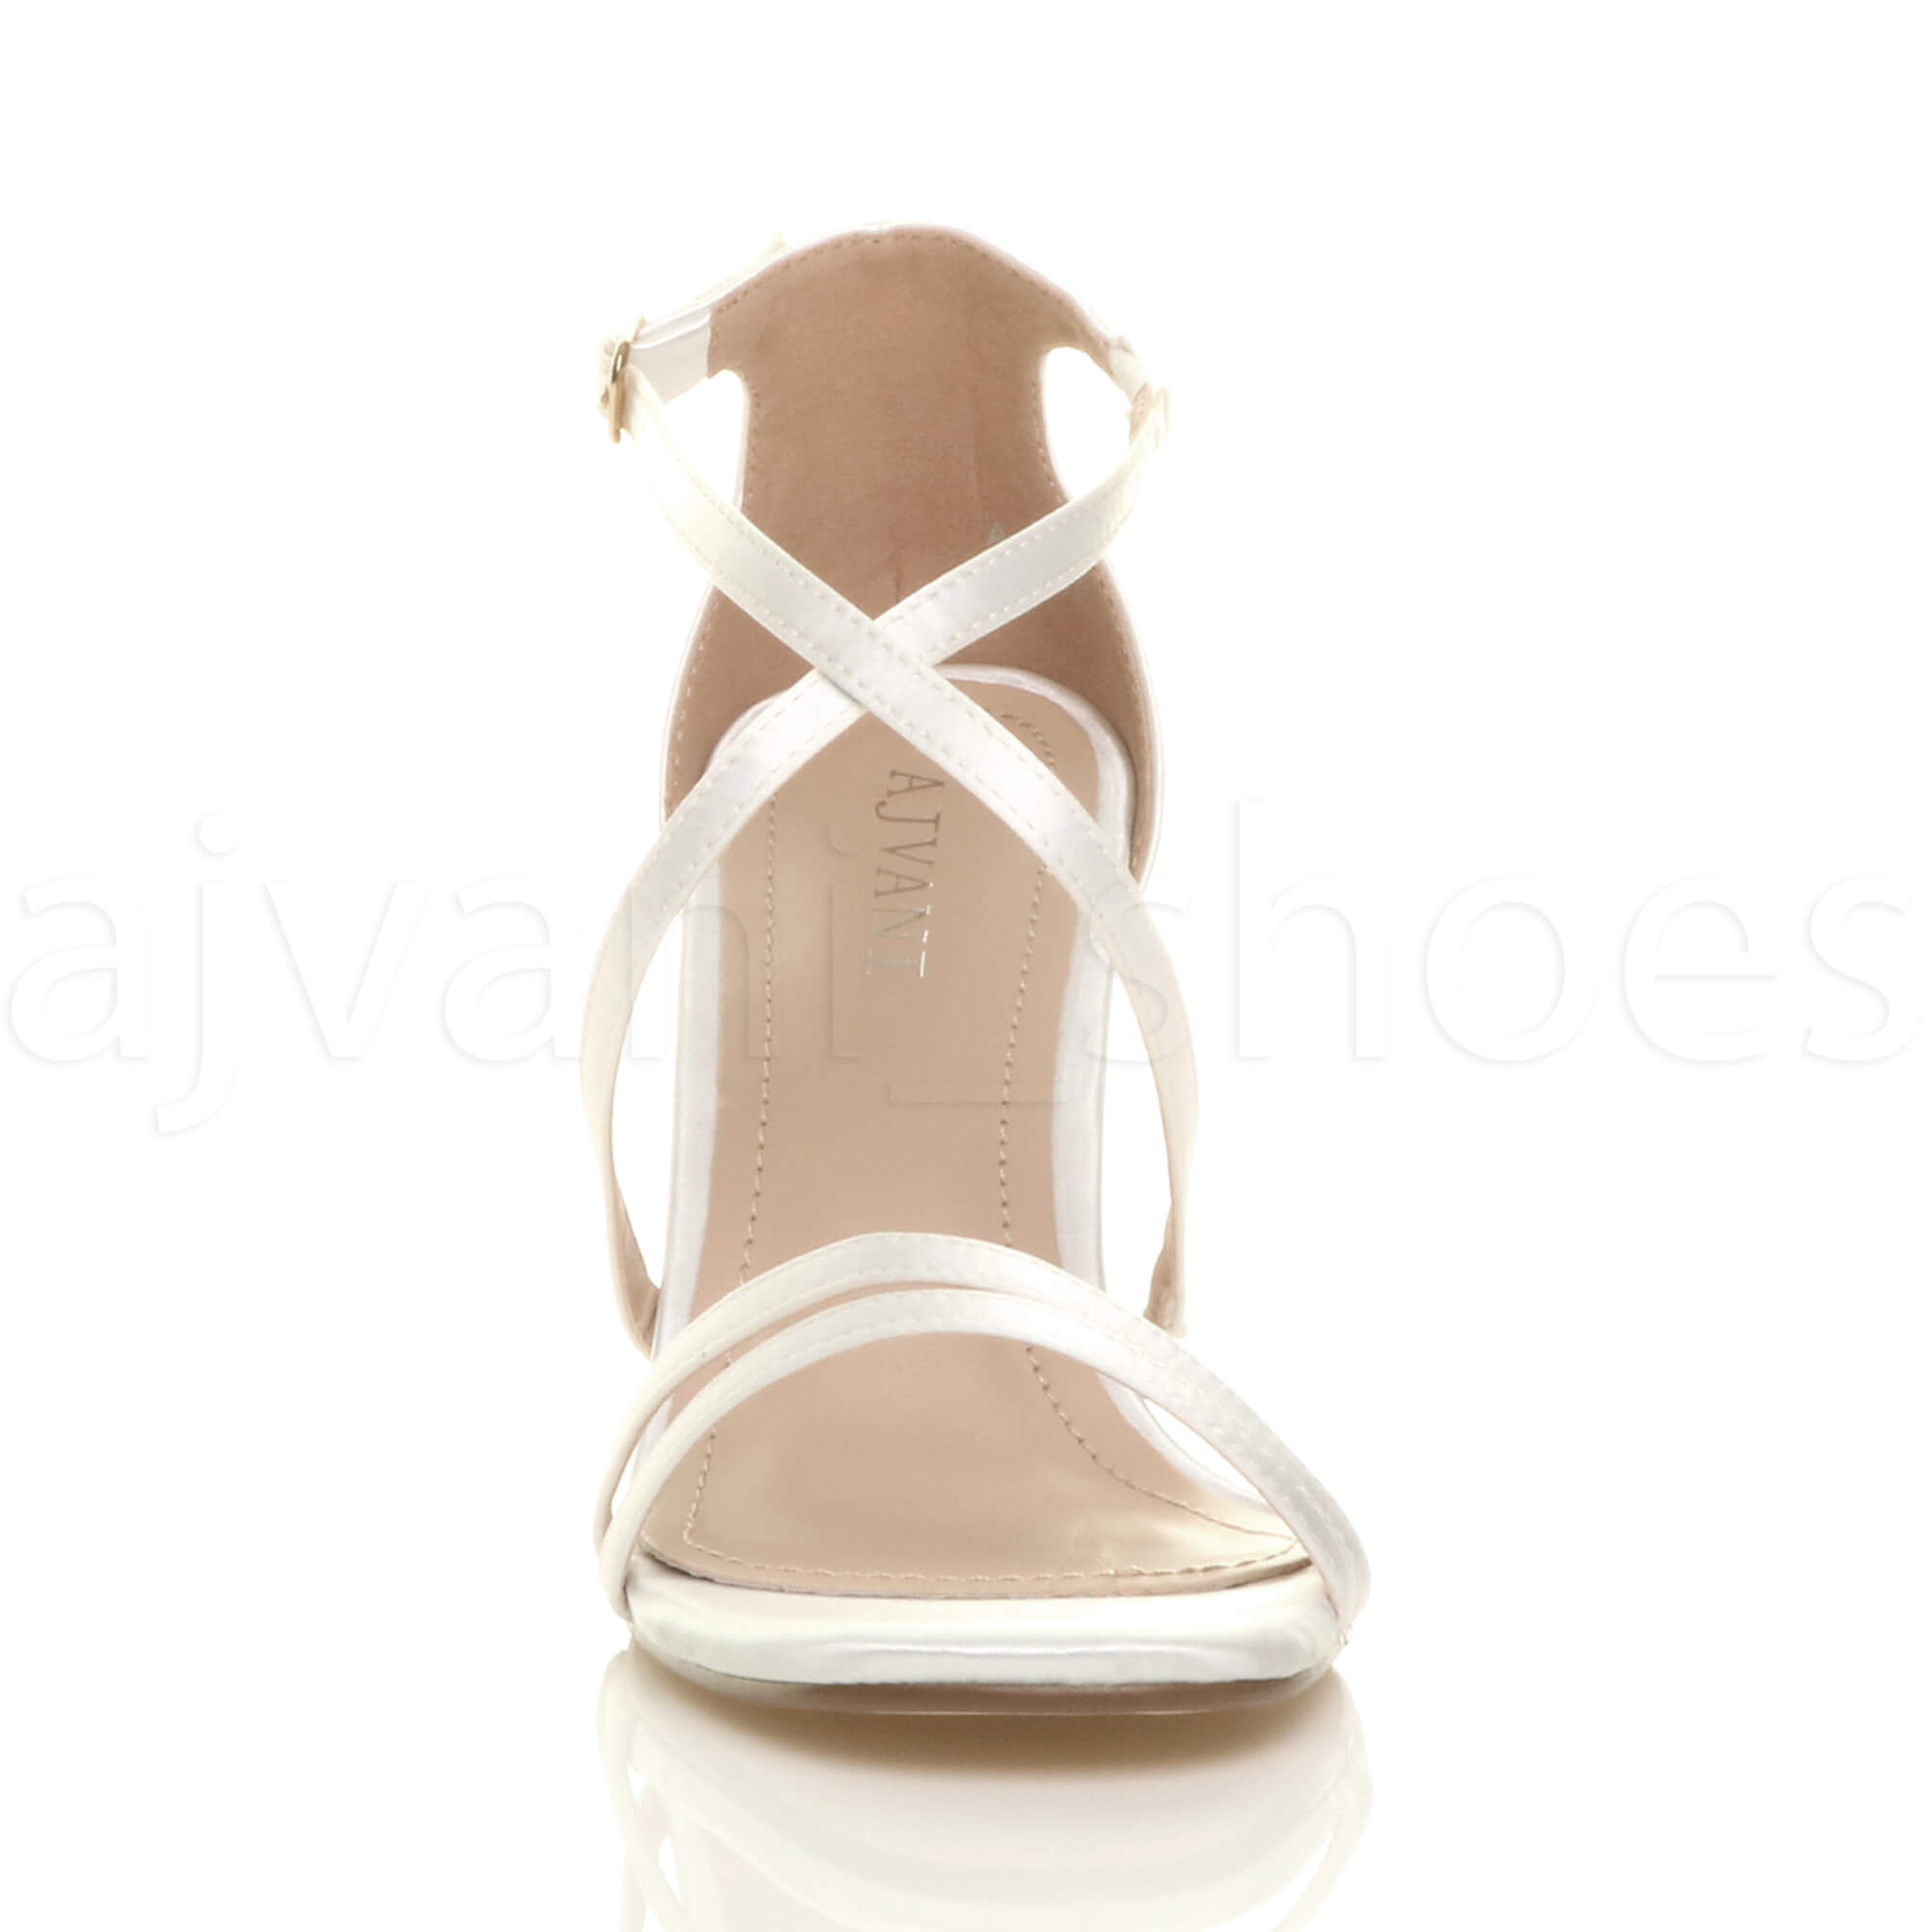 WOMENS-LADIES-MID-HIGH-HEEL-STRAPPY-CROSSOVER-WEDDING-PROM-SANDALS-SHOES-SIZE thumbnail 174